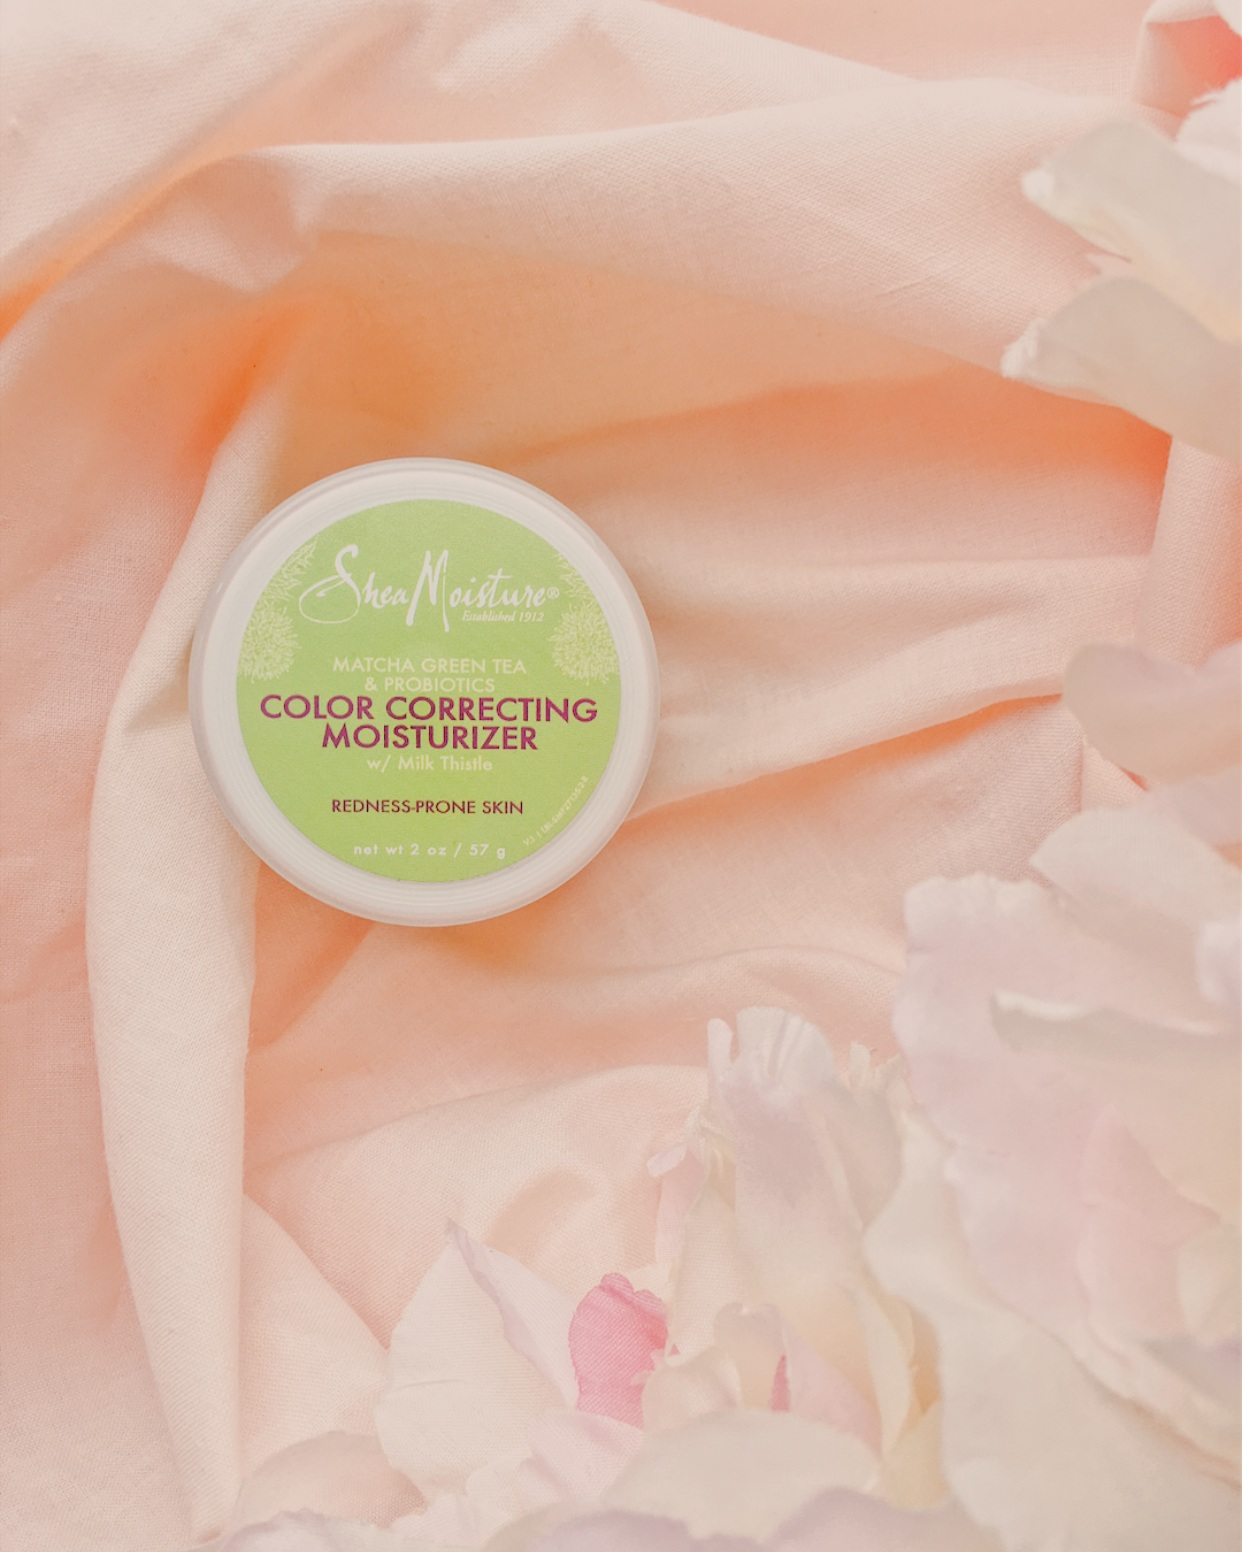 Sheamoisture color correcting moisturizer - For acne-prone/redness-prone skin, like mine, this moisturizer is a life saver!It contains antioxidant-rich matcha green tea to combat aging & acne combined with acne-fighting probiotics. The green pigments help to neutralize redness.I love the finish of this moisturizer because it's kind of tacky, so it makes for the perfect foundation base.